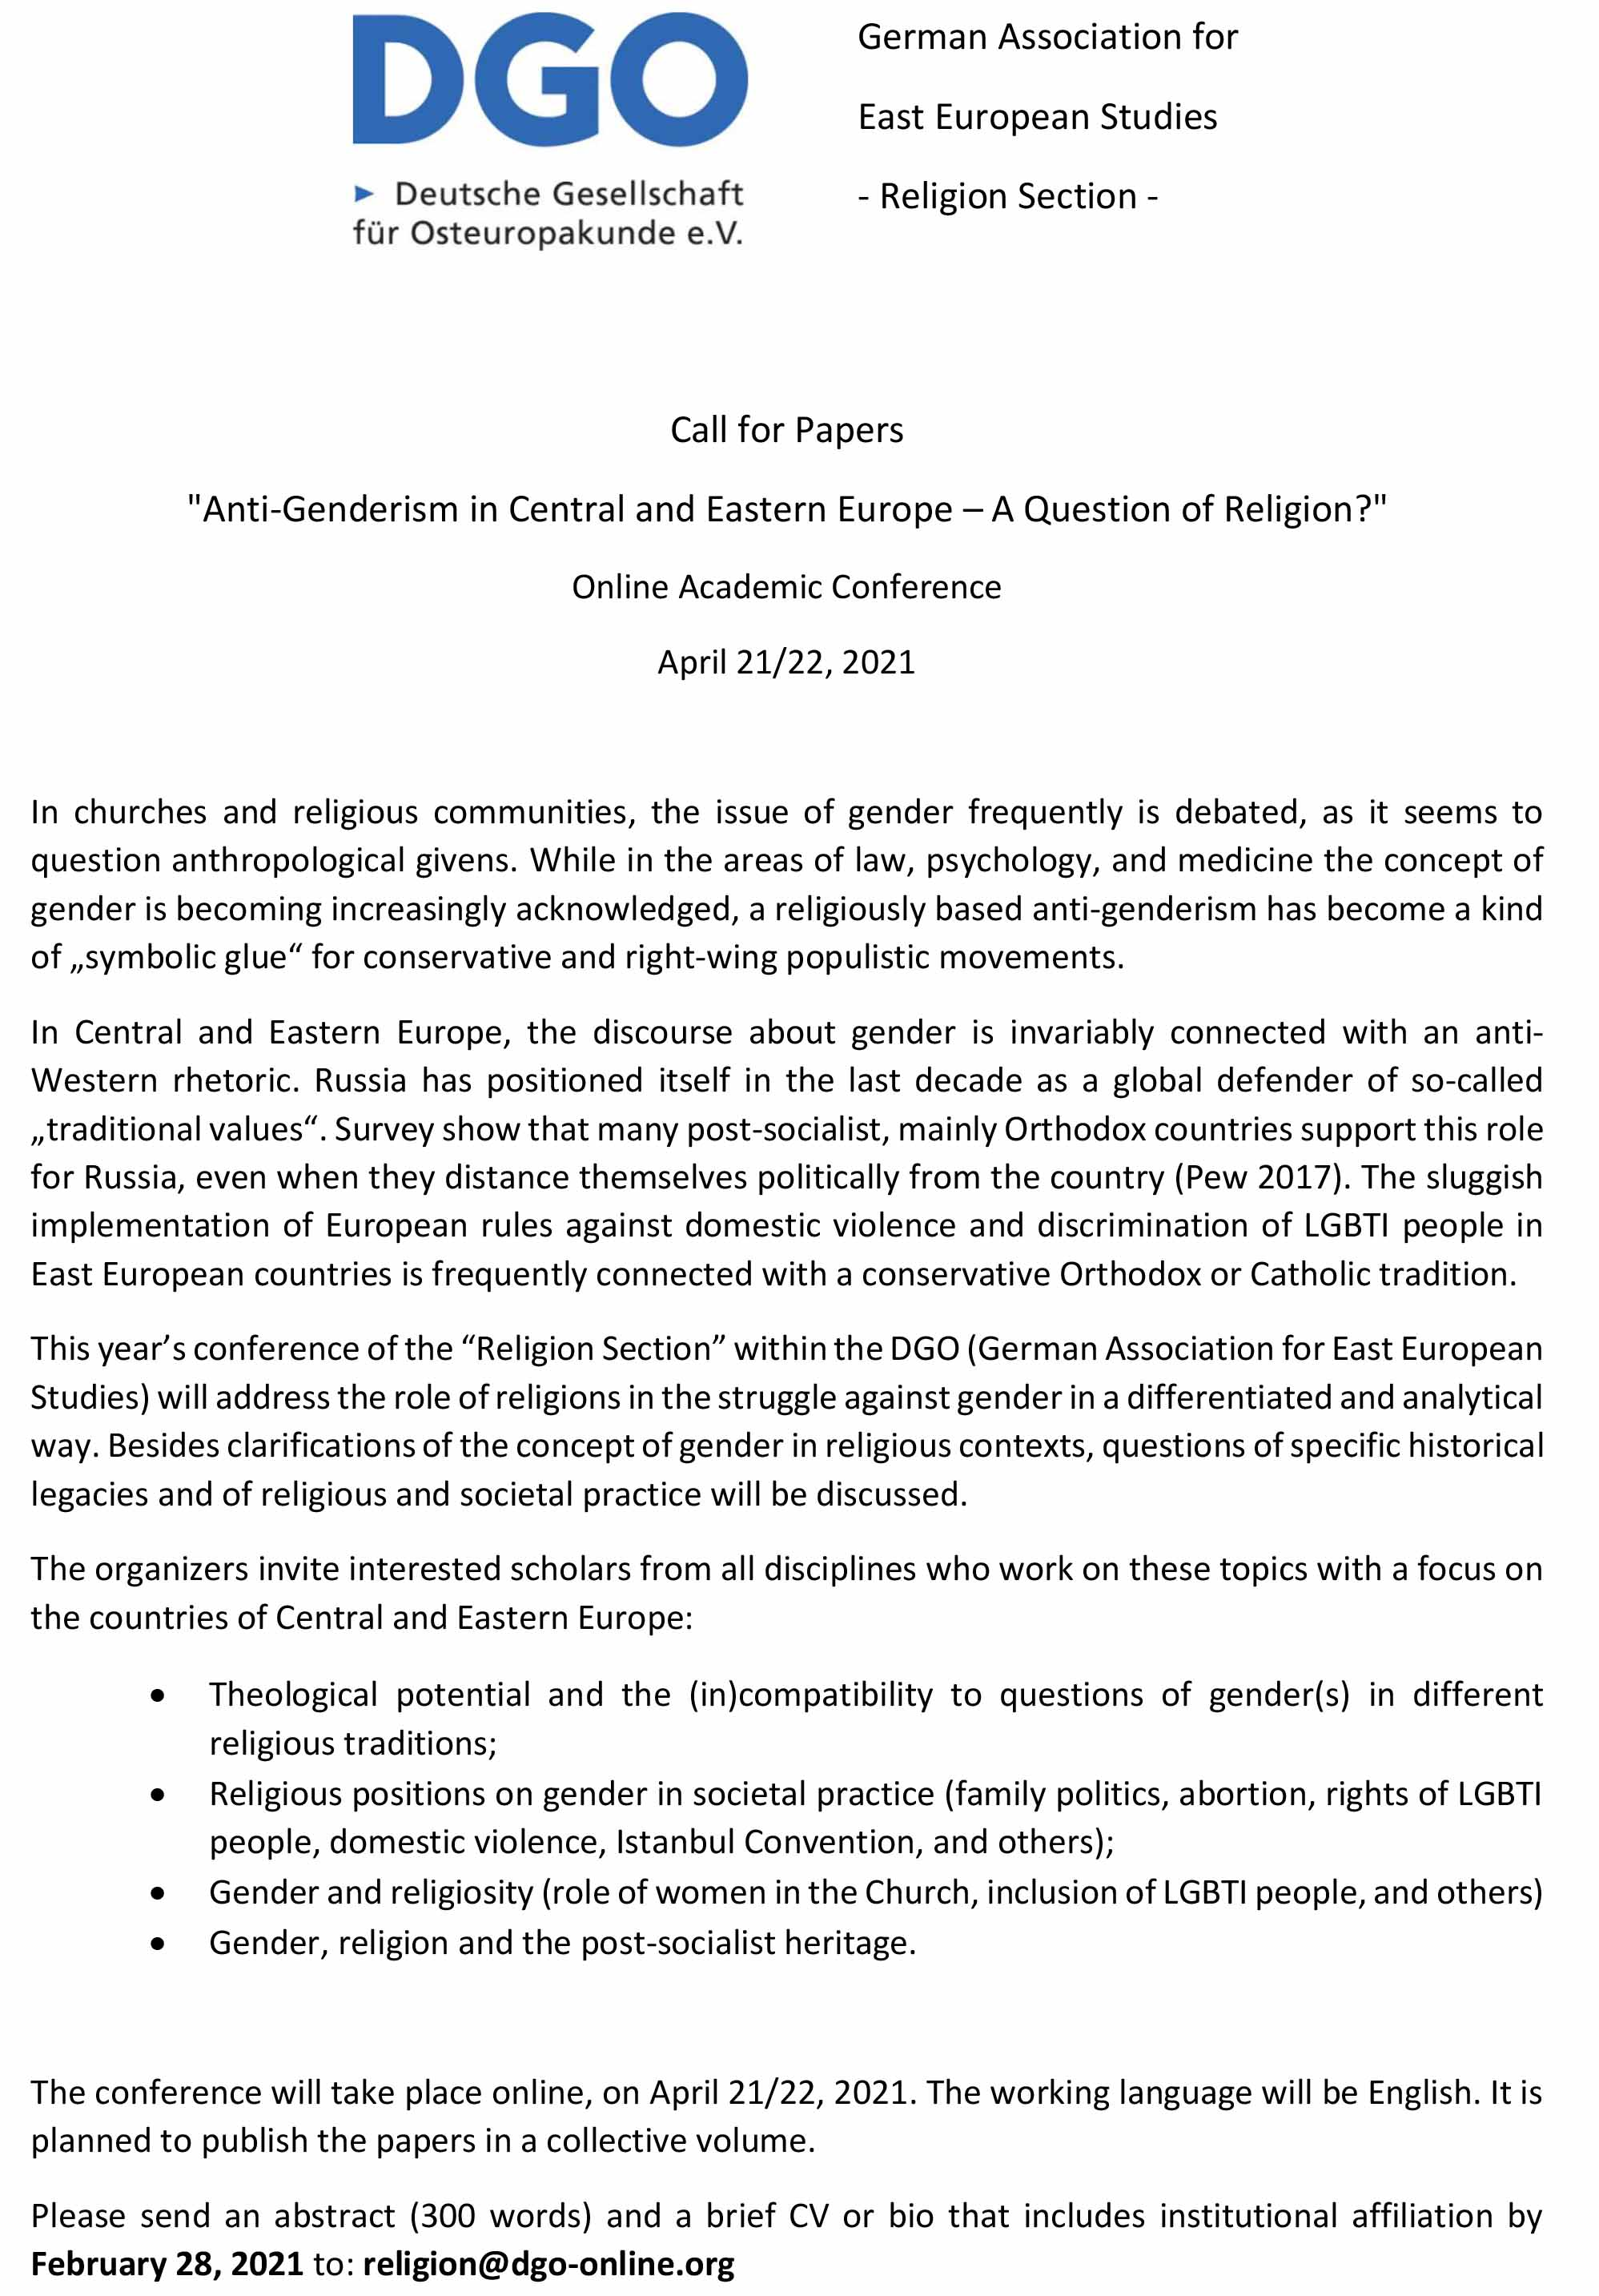 CfP Ant Genderism in Central and Eastern Europe